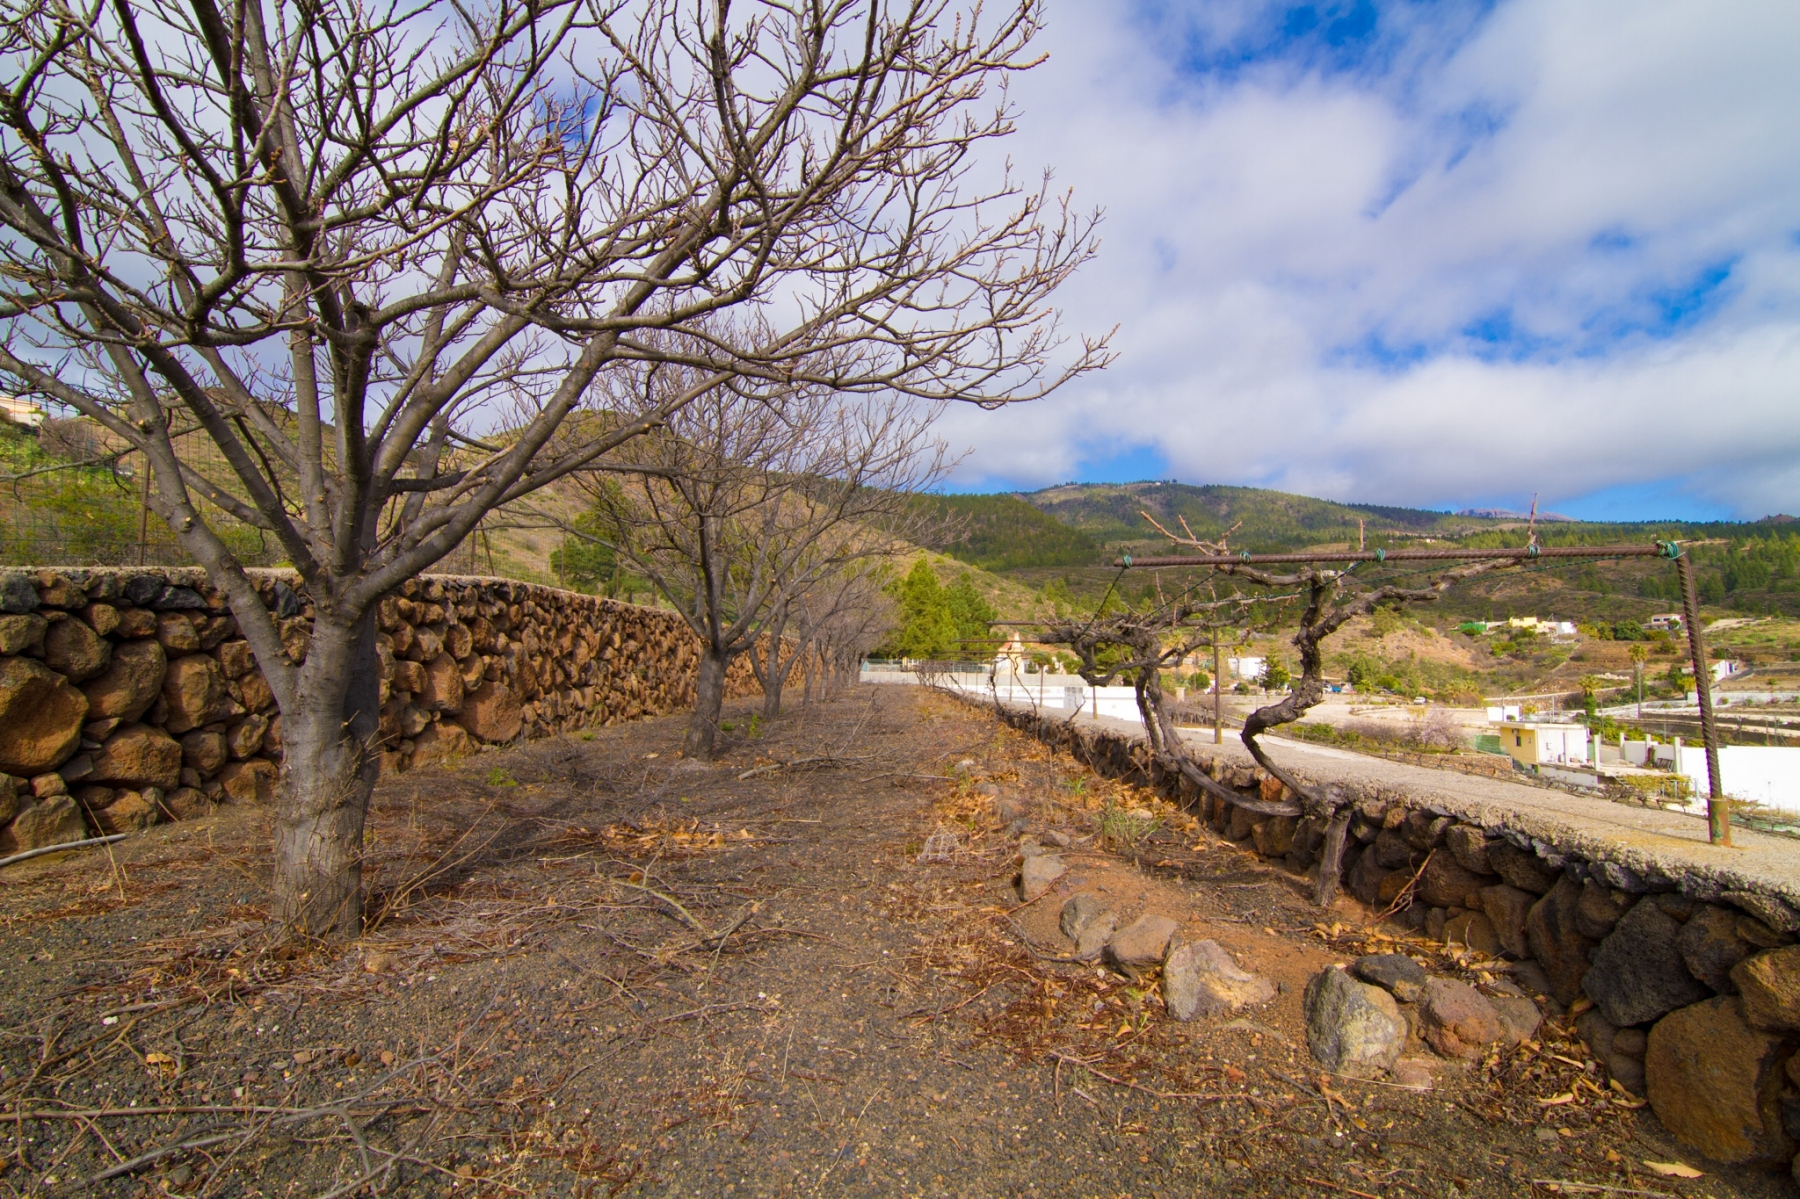 Properties for Sale in Tenerife, Canary Islands, Spain | SylkWayStar Real Estate. Finca with vineyard - Cruz de Tea - Granadilla de Abona . Image-21862